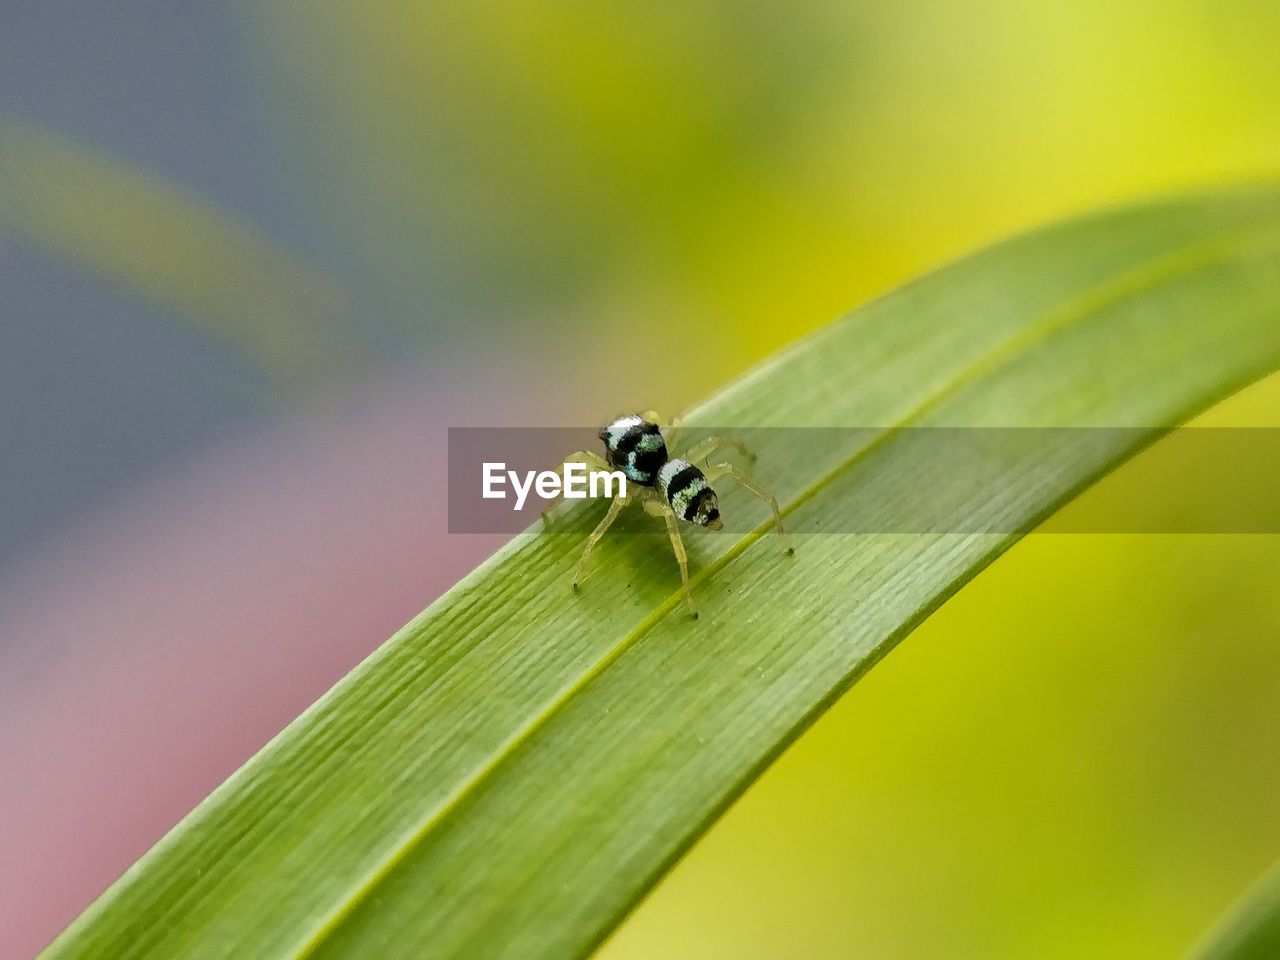 invertebrate, insect, close-up, animal themes, animals in the wild, animal wildlife, animal, one animal, plant part, green color, leaf, no people, nature, plant, day, focus on foreground, outdoors, selective focus, beauty in nature, growth, blade of grass